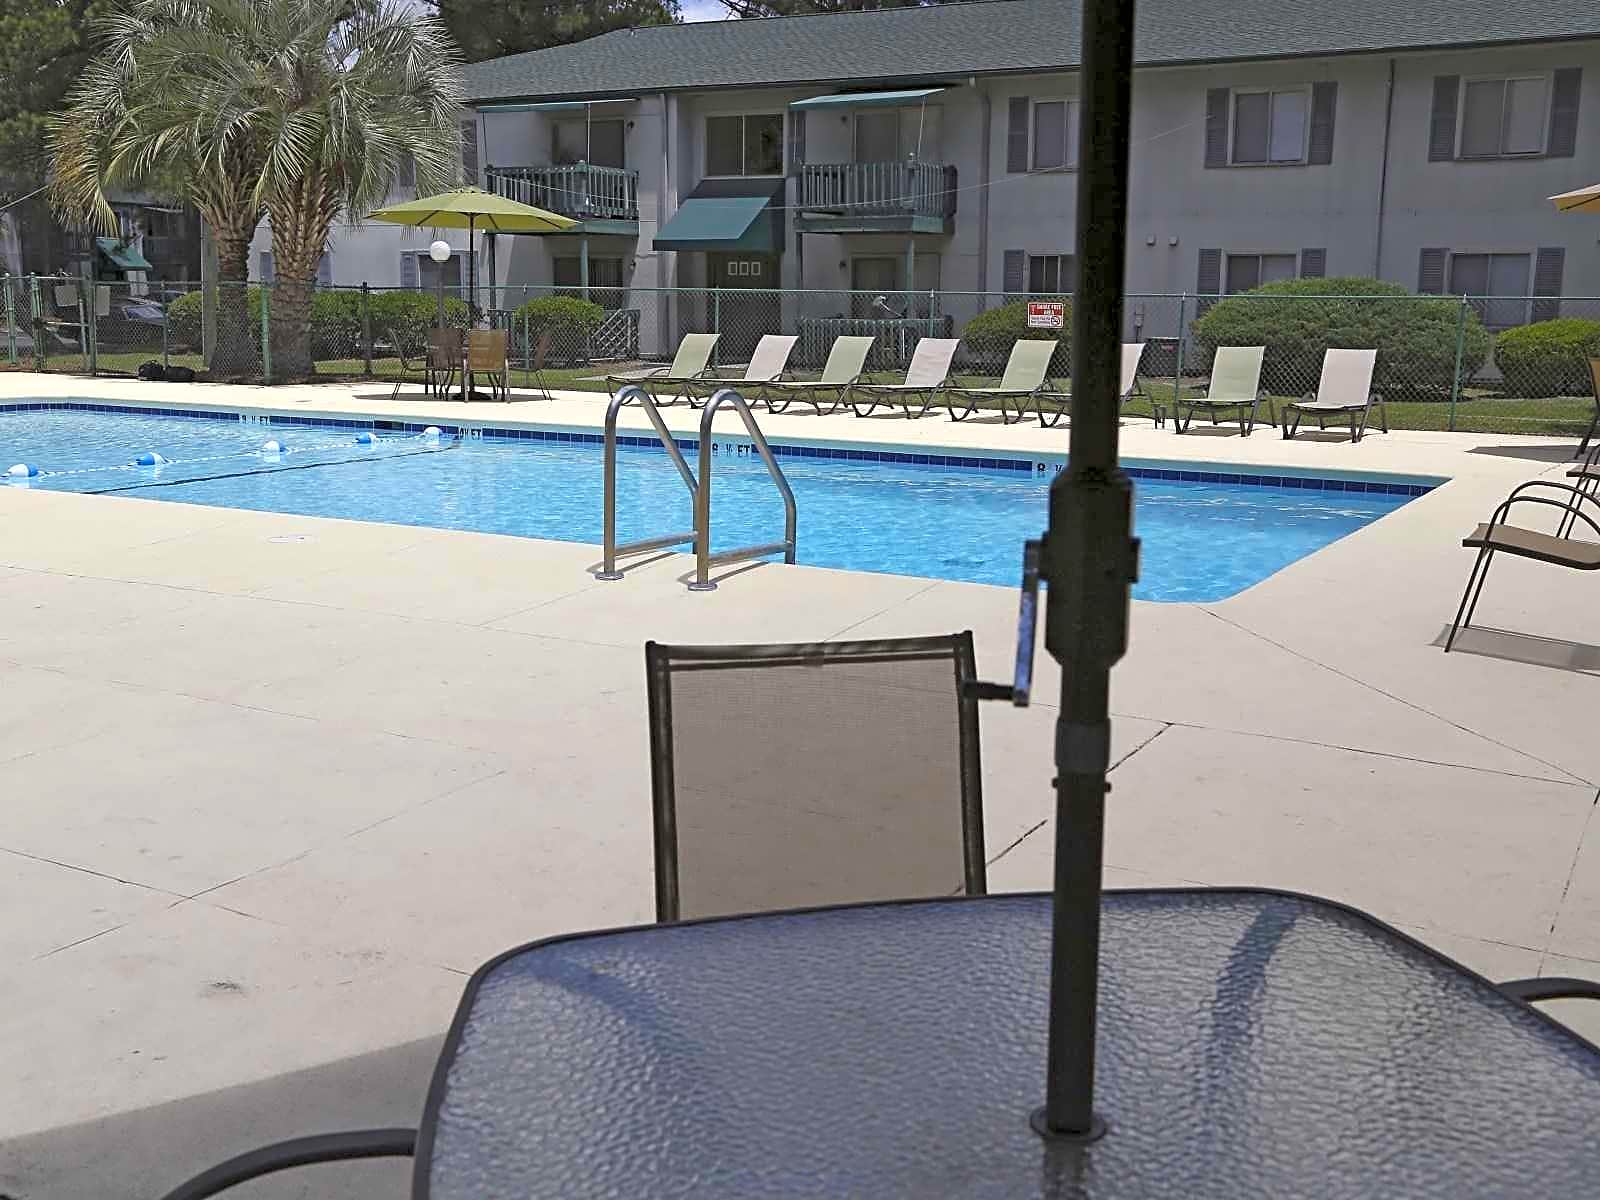 Apartments Near South Timberland Apartments for South University Students in Savannah, GA